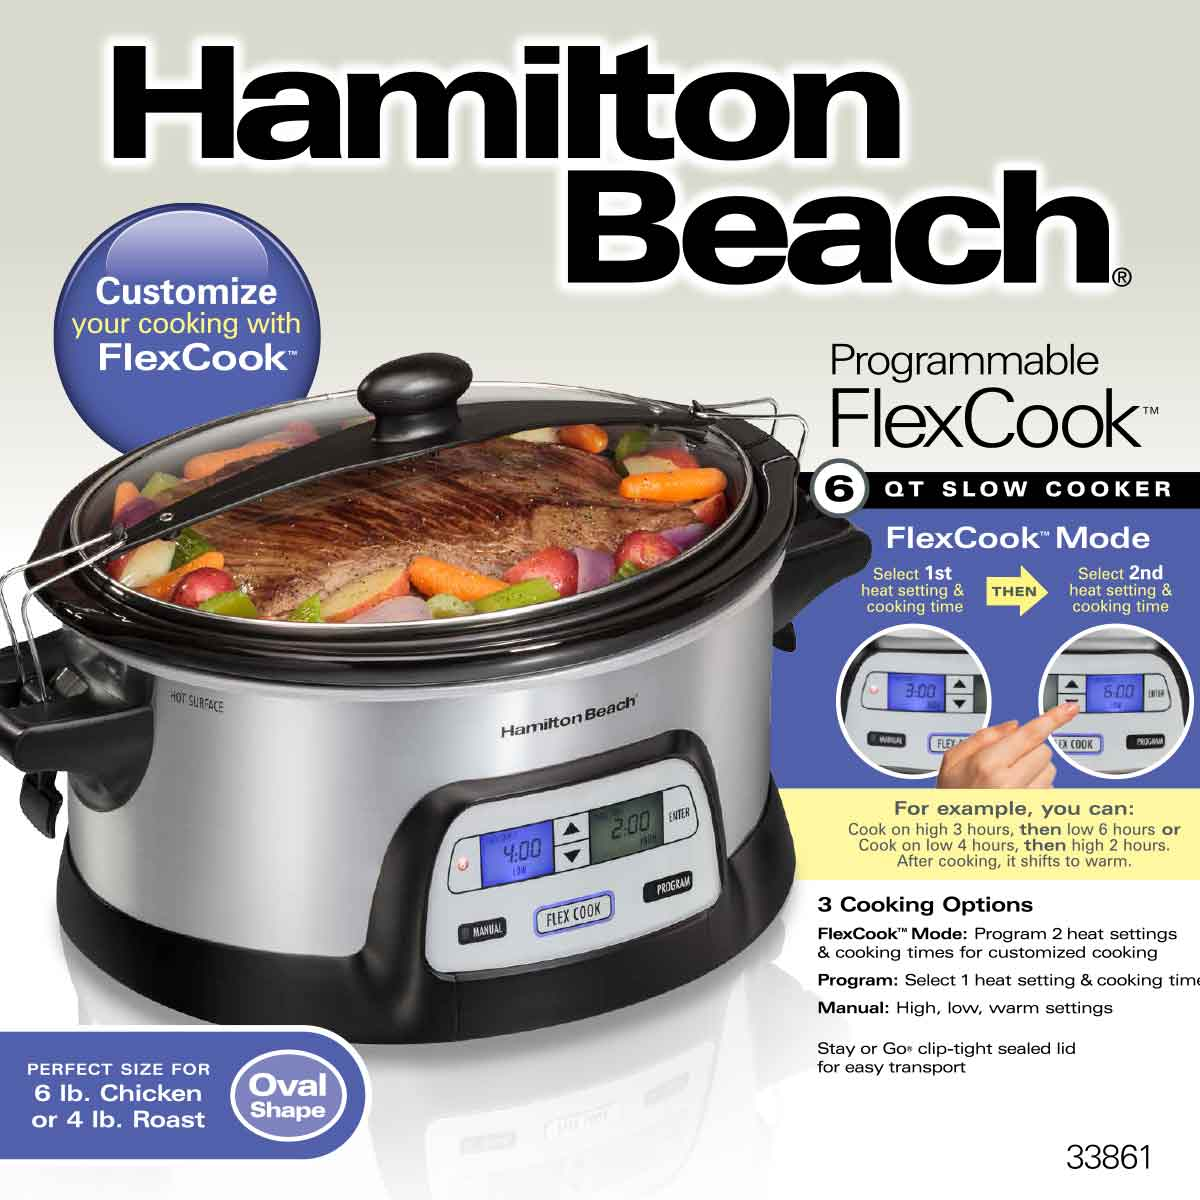 FlexCook 6 Qt Stay or Go® Slow Cooker (33861)